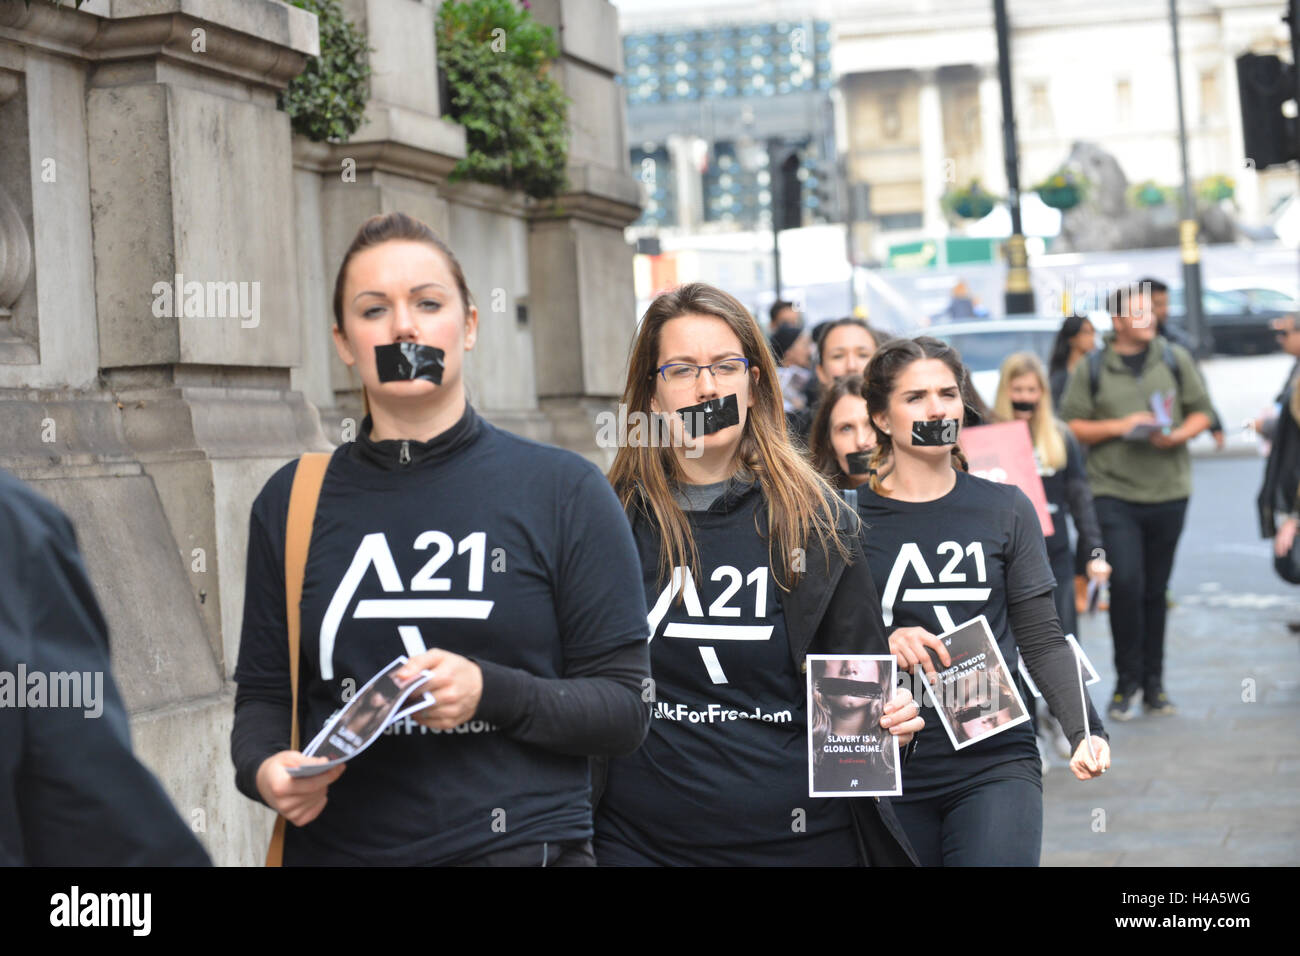 London, UK. 15th October 2016. Walk For Freedom, protest march central London. The silent march is against modern - Stock Image